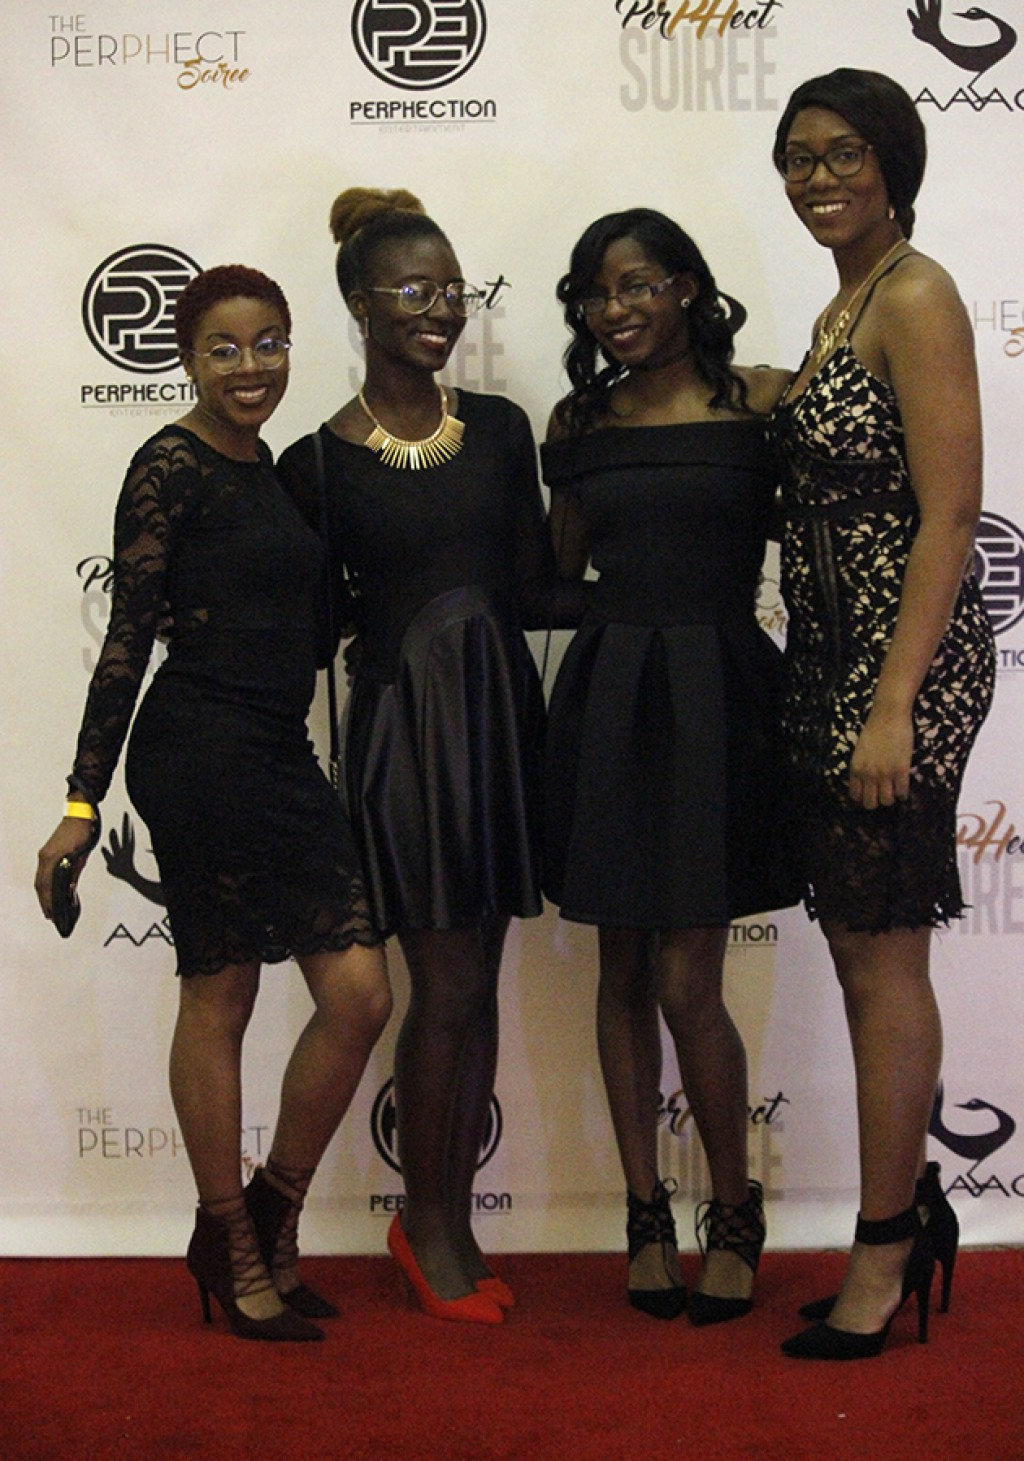 From left to right, Briana Brown, Kara Craighead, Tierney McCoy and Tierstene Dandridge posed for photos to ring in the beginning of AAAC's mixer.